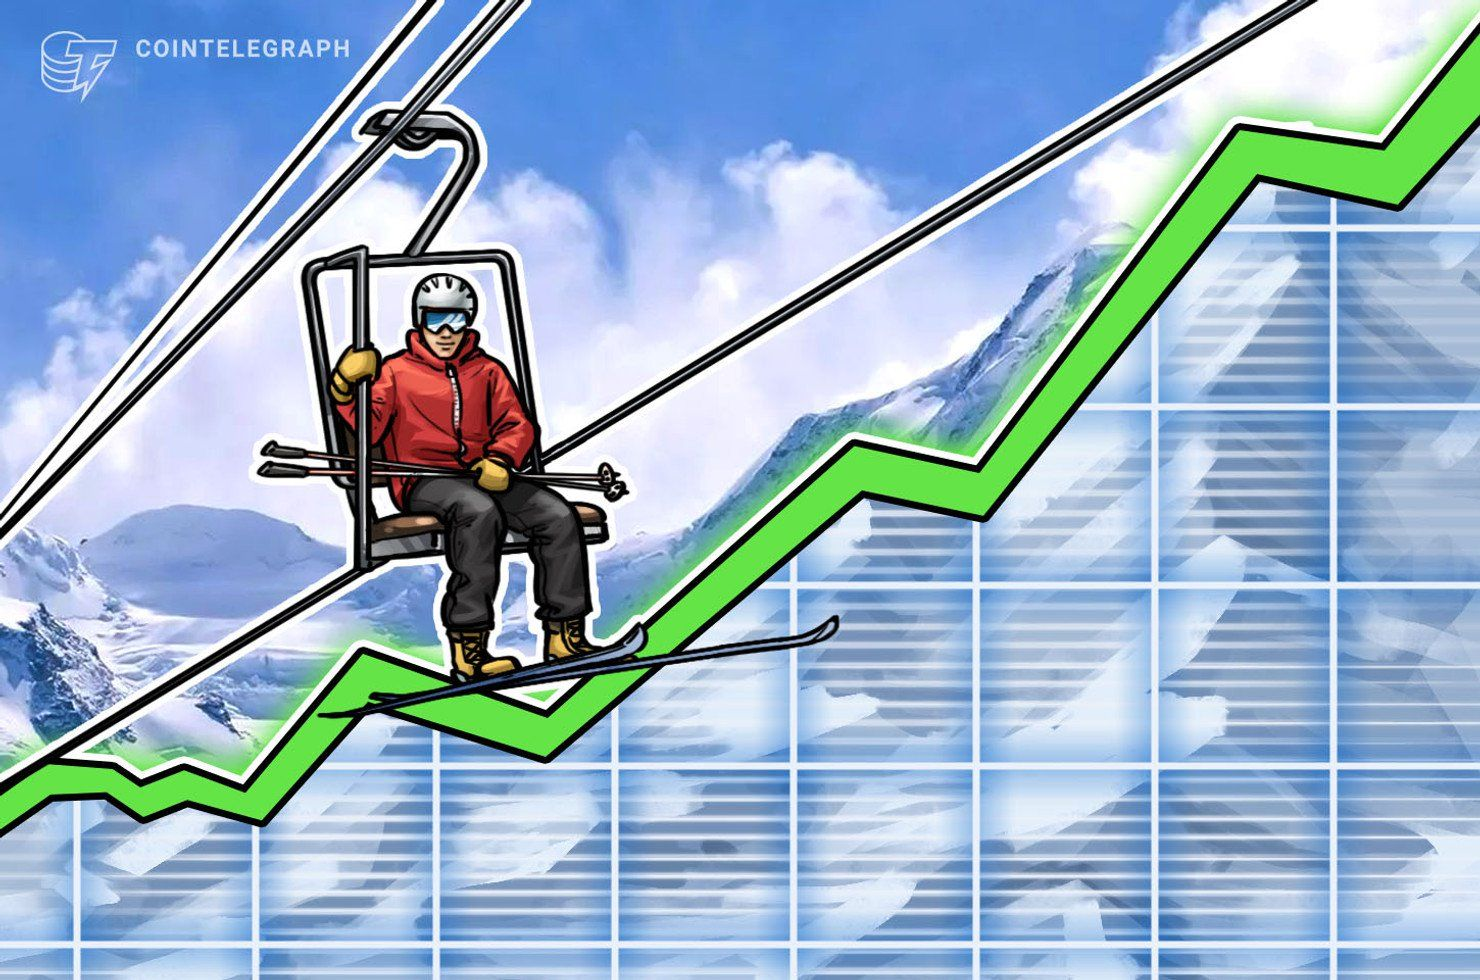 Bitcoin hovers over 5250 as top cryptos see growth